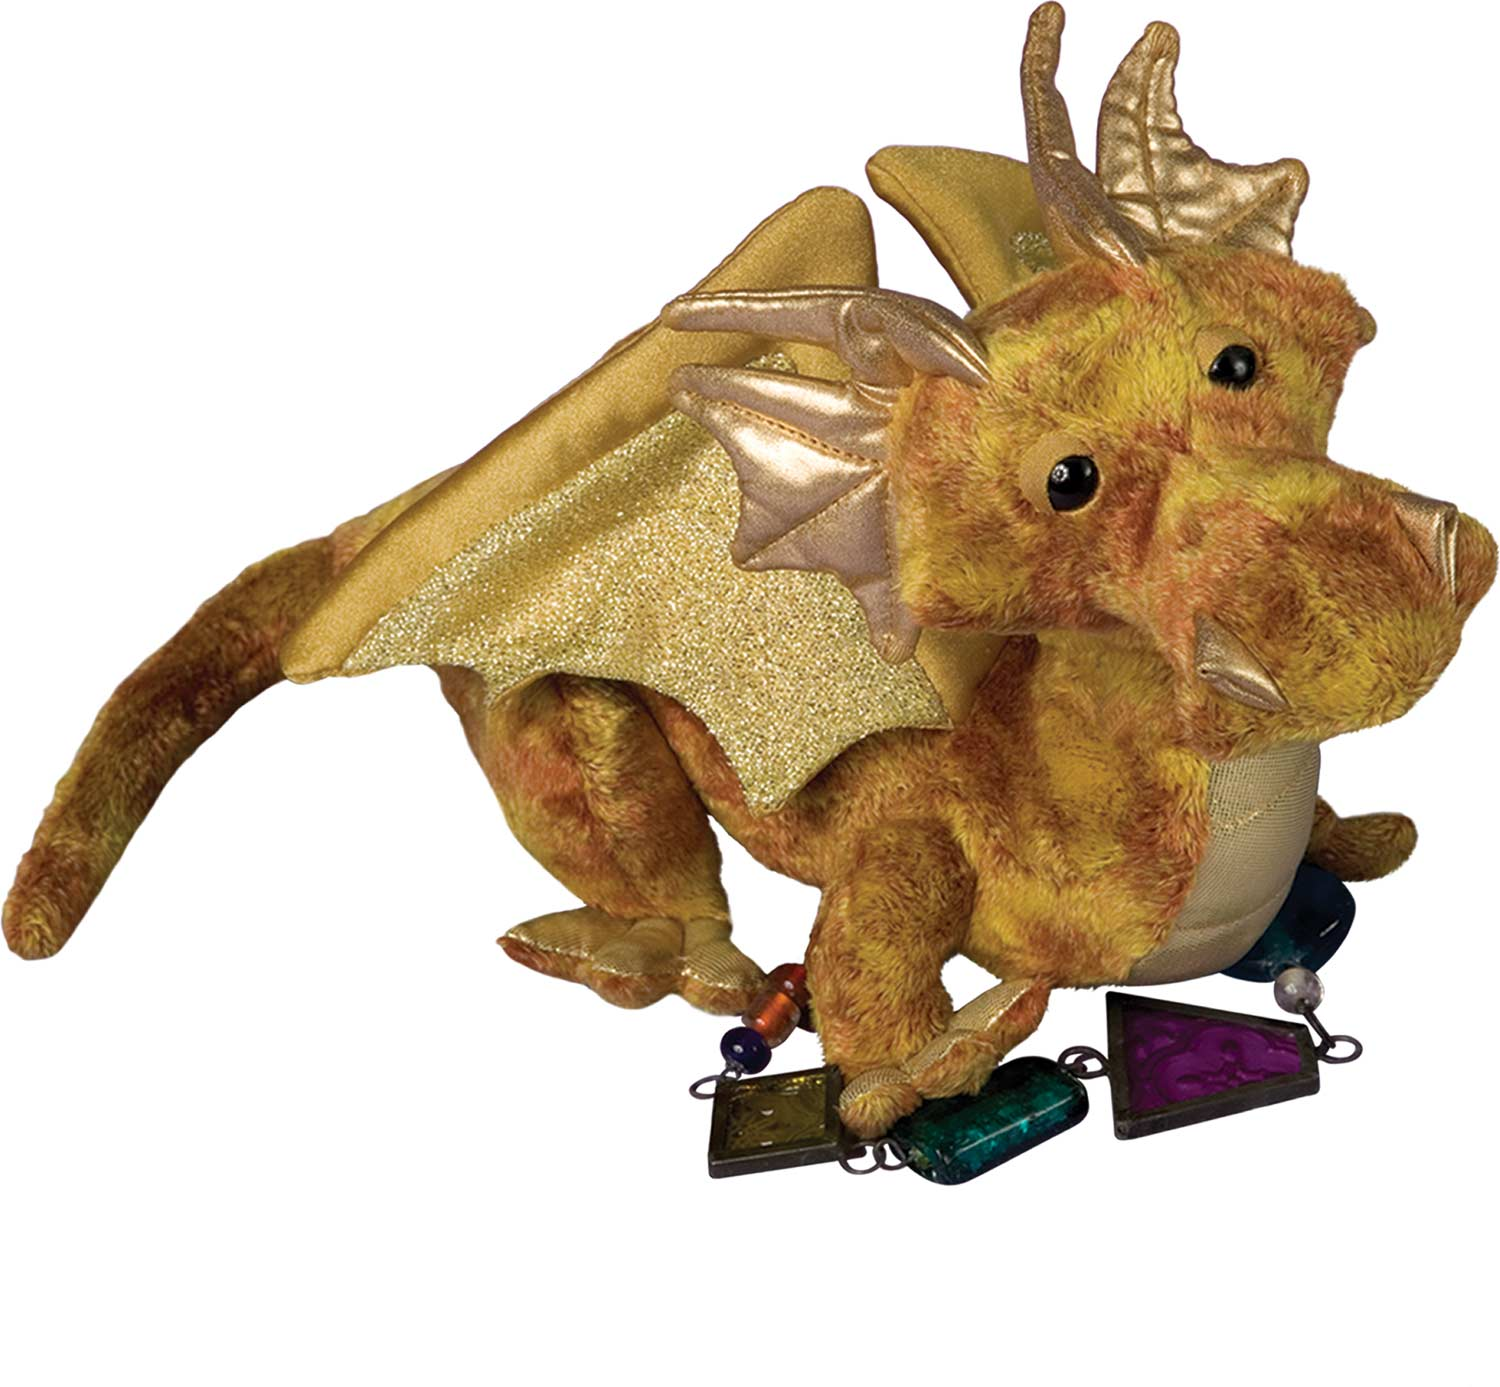 Topaz Dragon The Wooden Toy